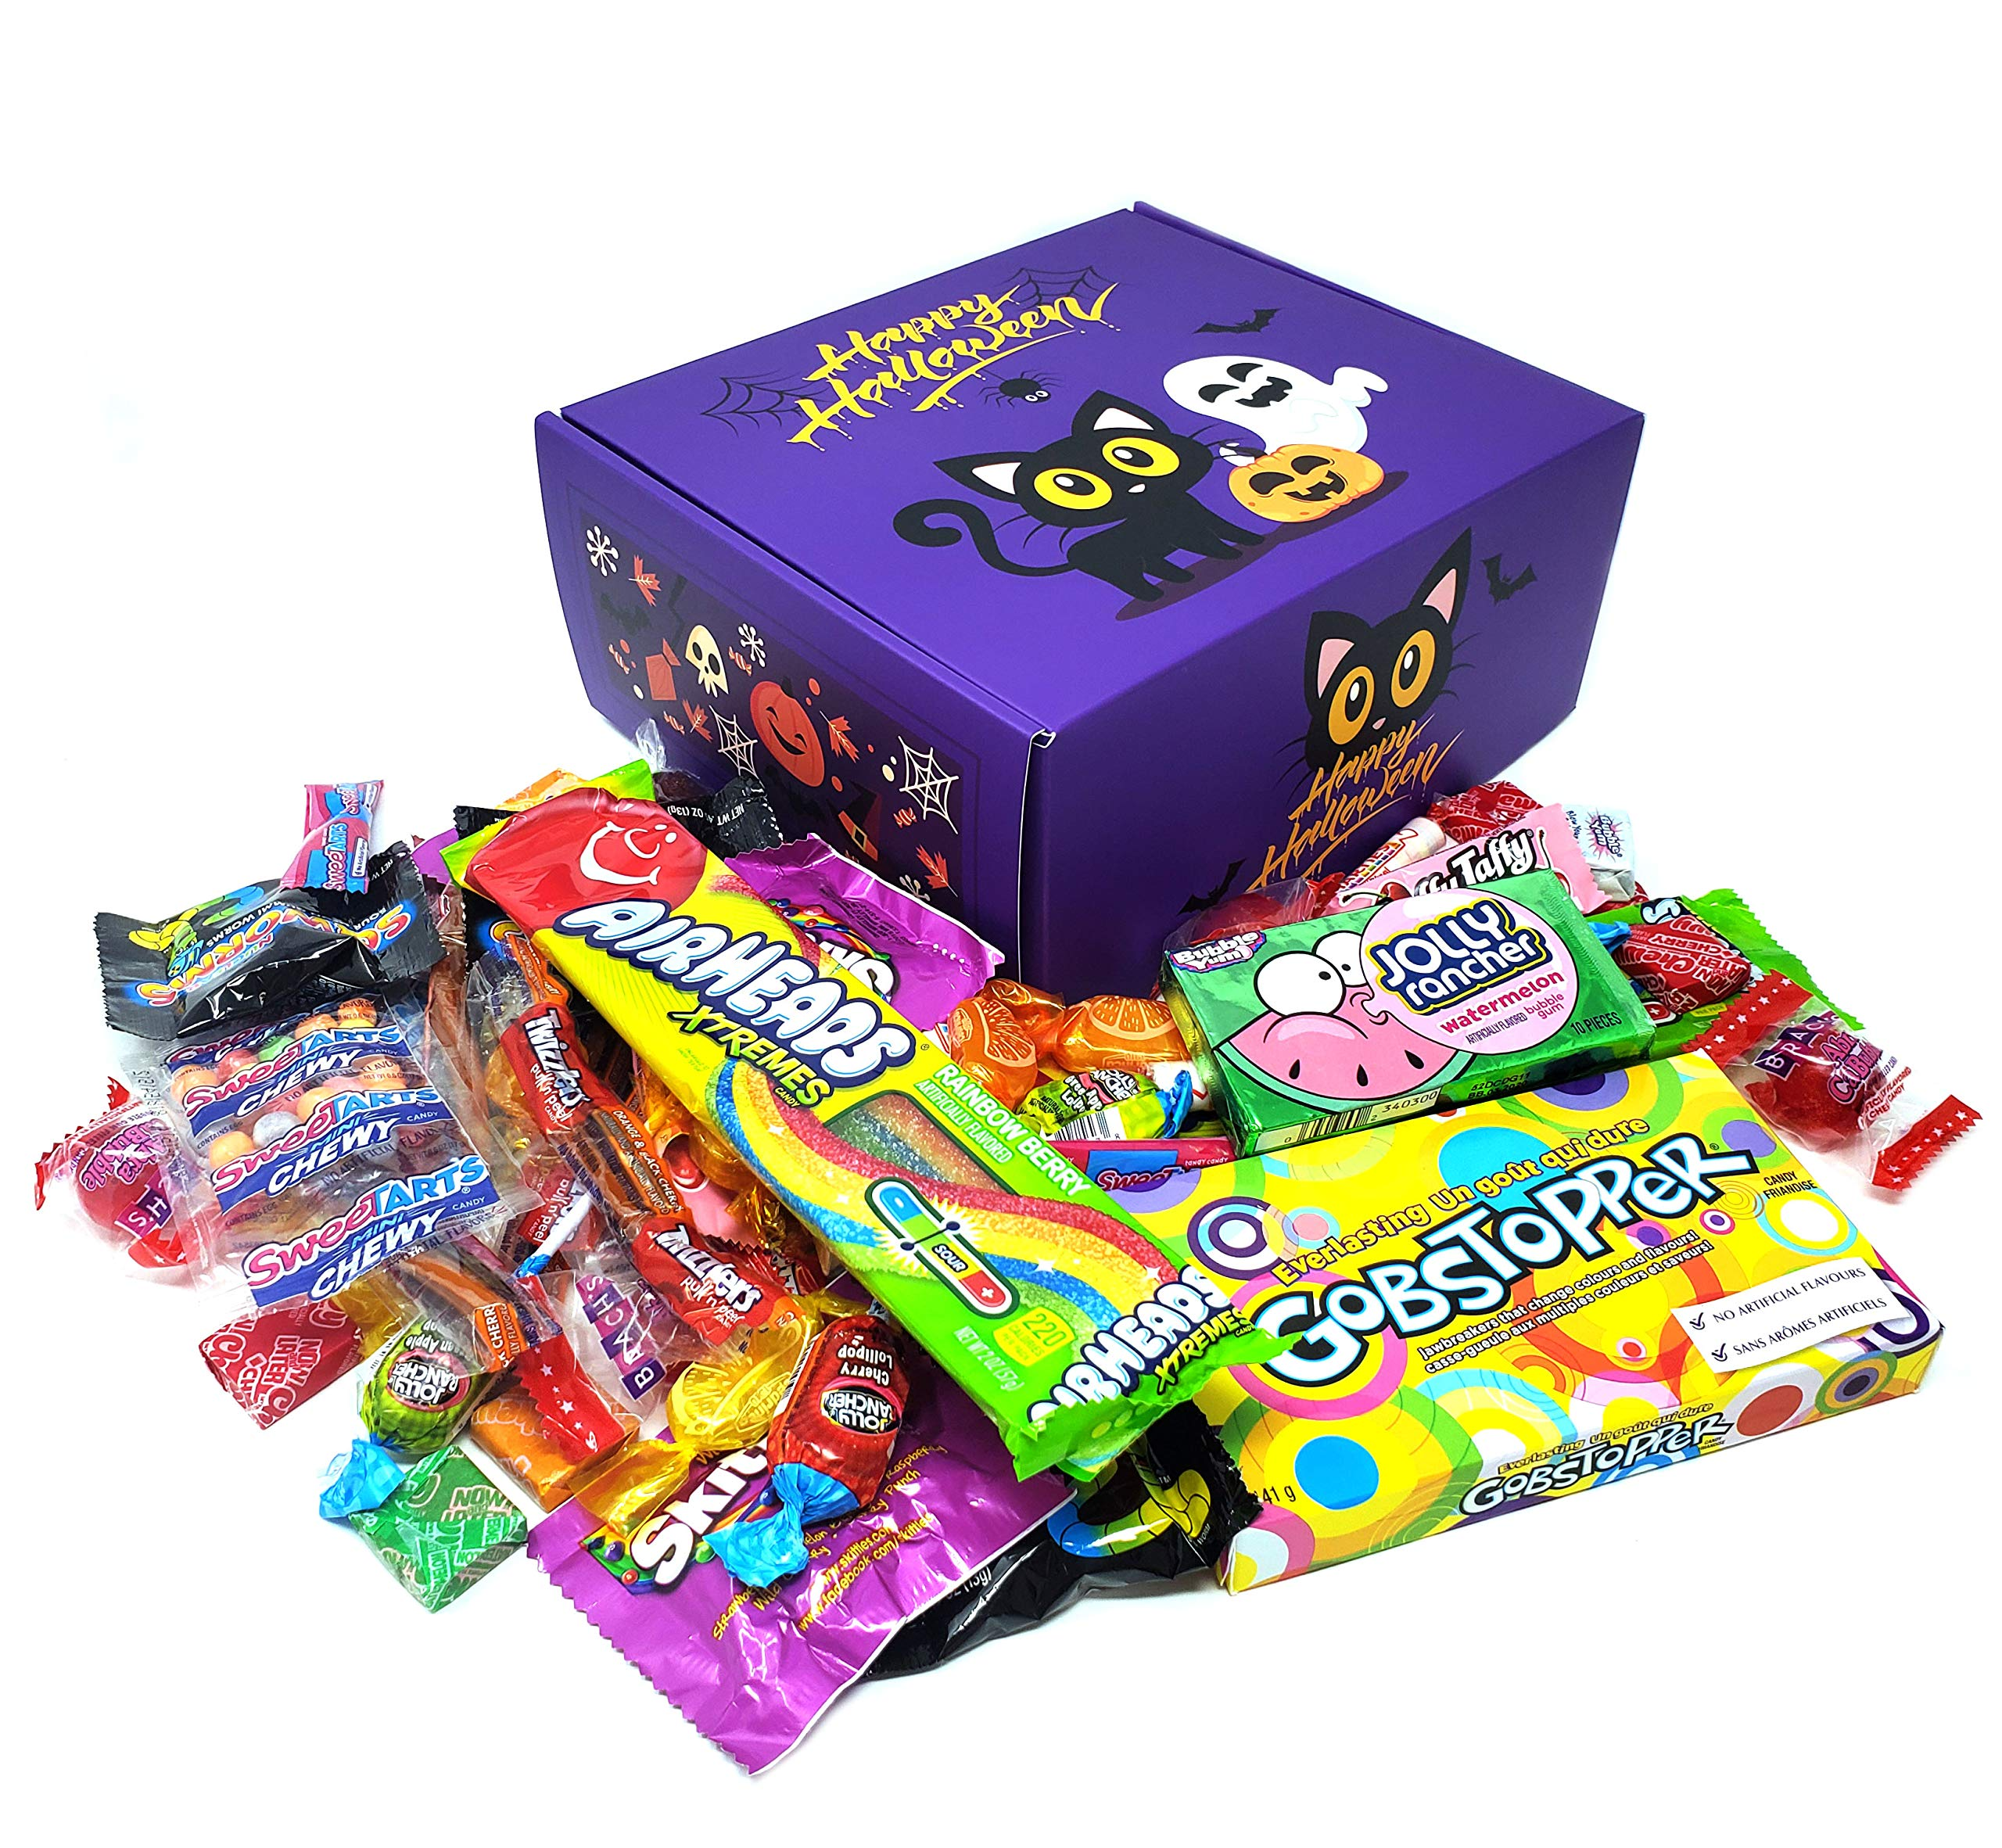 Halloween Favor Candy Box - Gobstopper, AirHeads, Skittles, Sqworms, Smarties, SweeTarts, Brach's, Laffy taffy, Now and Later, Butterscotch and More, 4 Lbs by CRAZYOUTLET